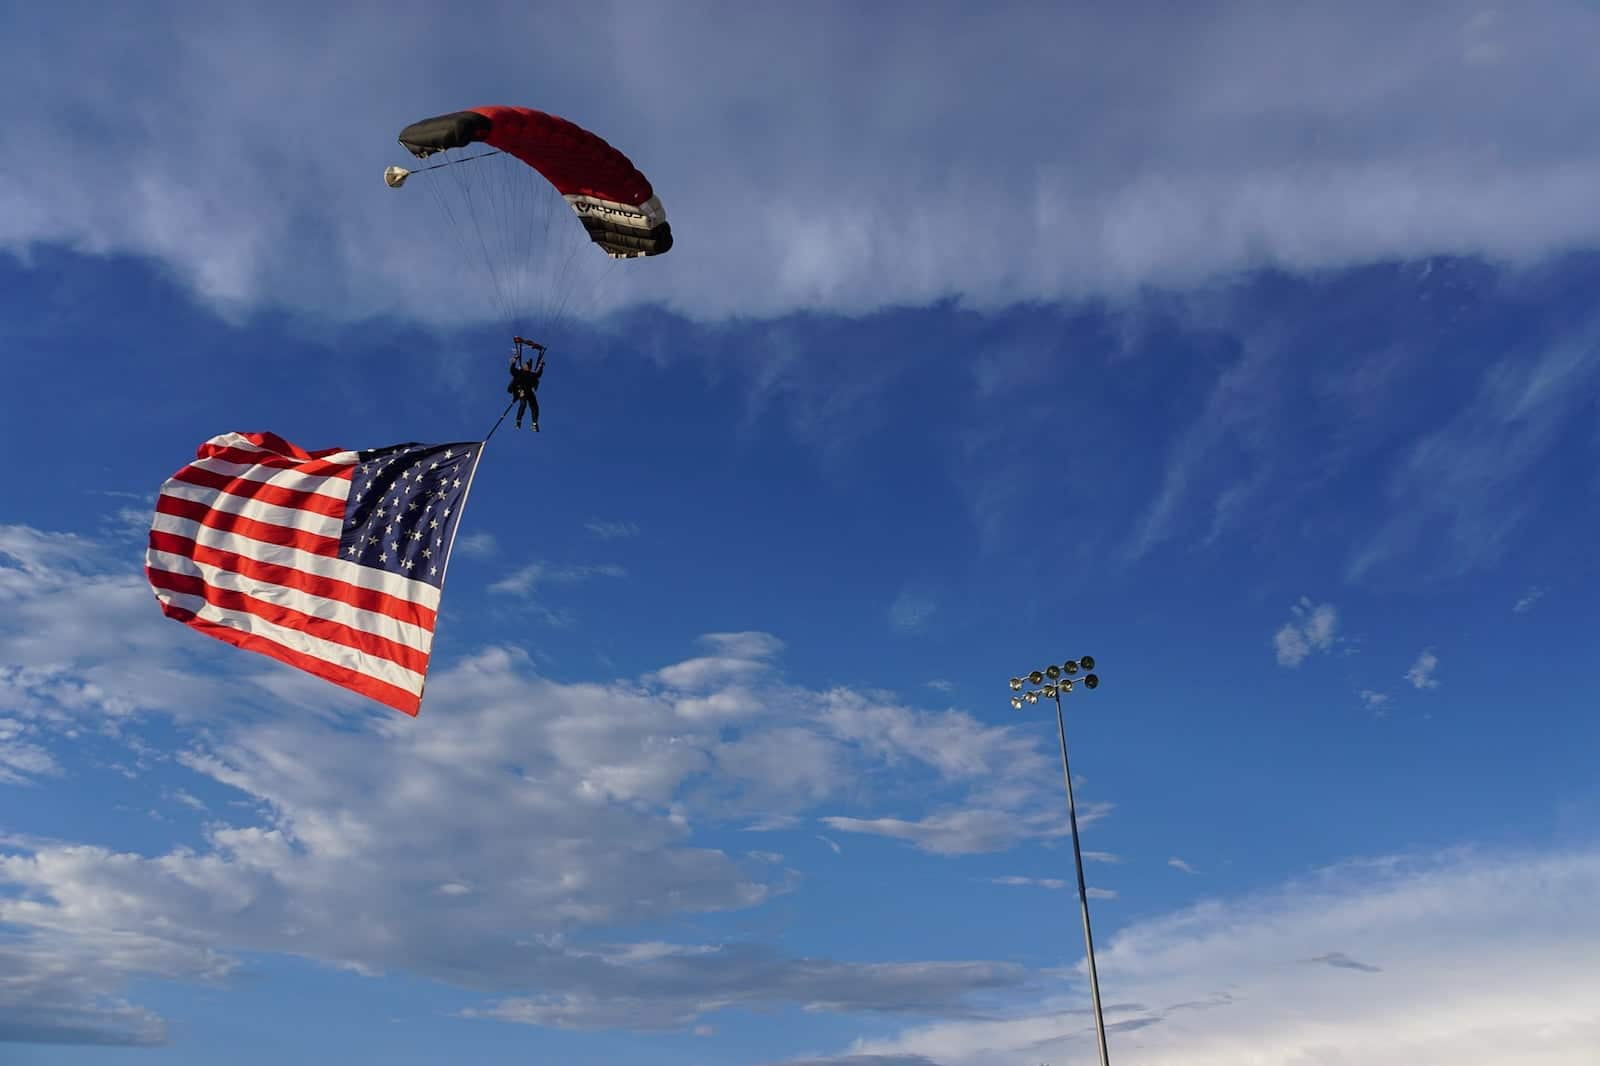 Image of a skydiver from Out of the Blue Skydiving with the USA flag in Calhan, CO